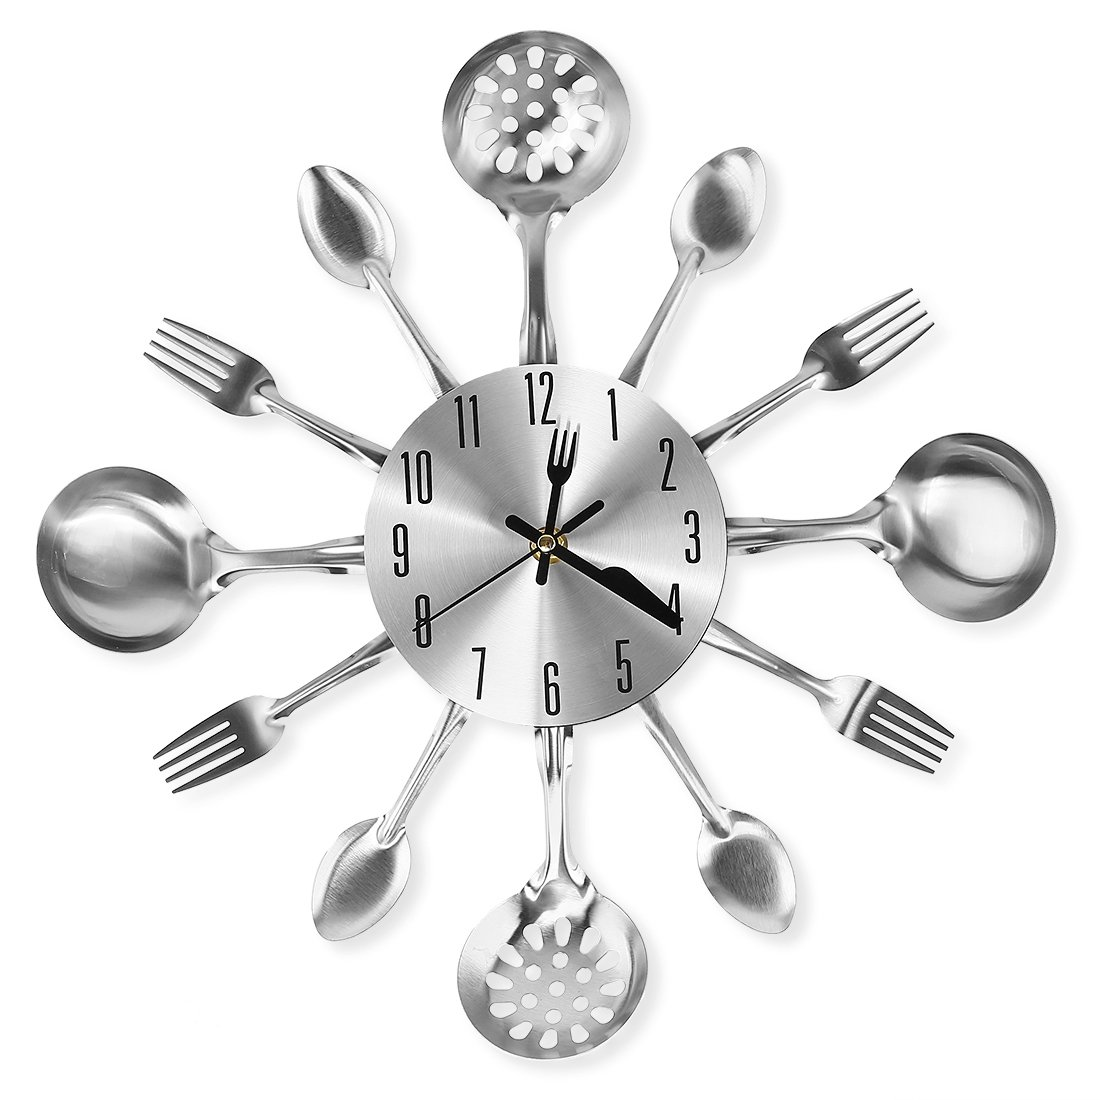 """Cigera 14"""" Kitchen Cutlery Wall Clock with Forks and Spoons for Home Decor,Sliver"""